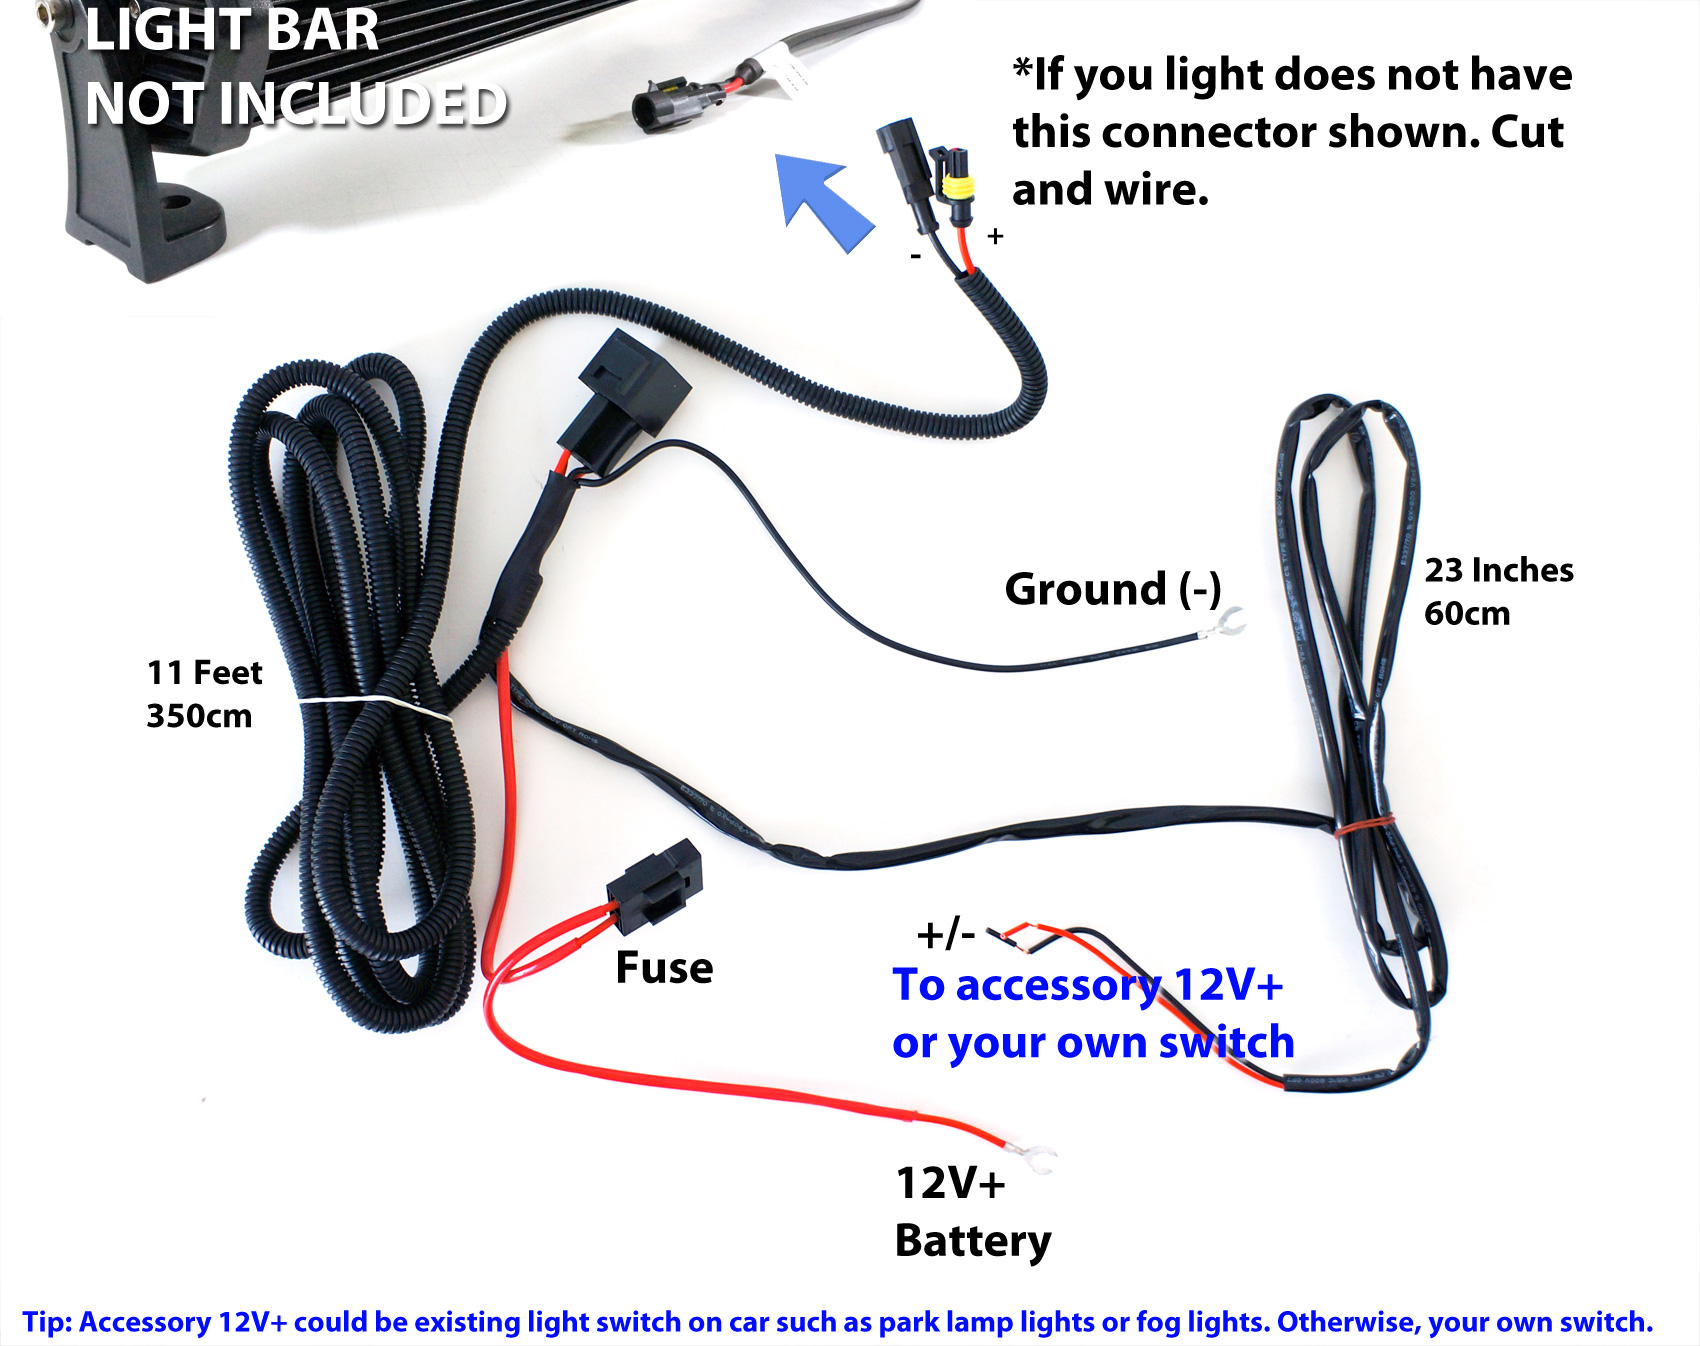 Led Lighting Wiring Harness - Wiring Diagrams Pause on